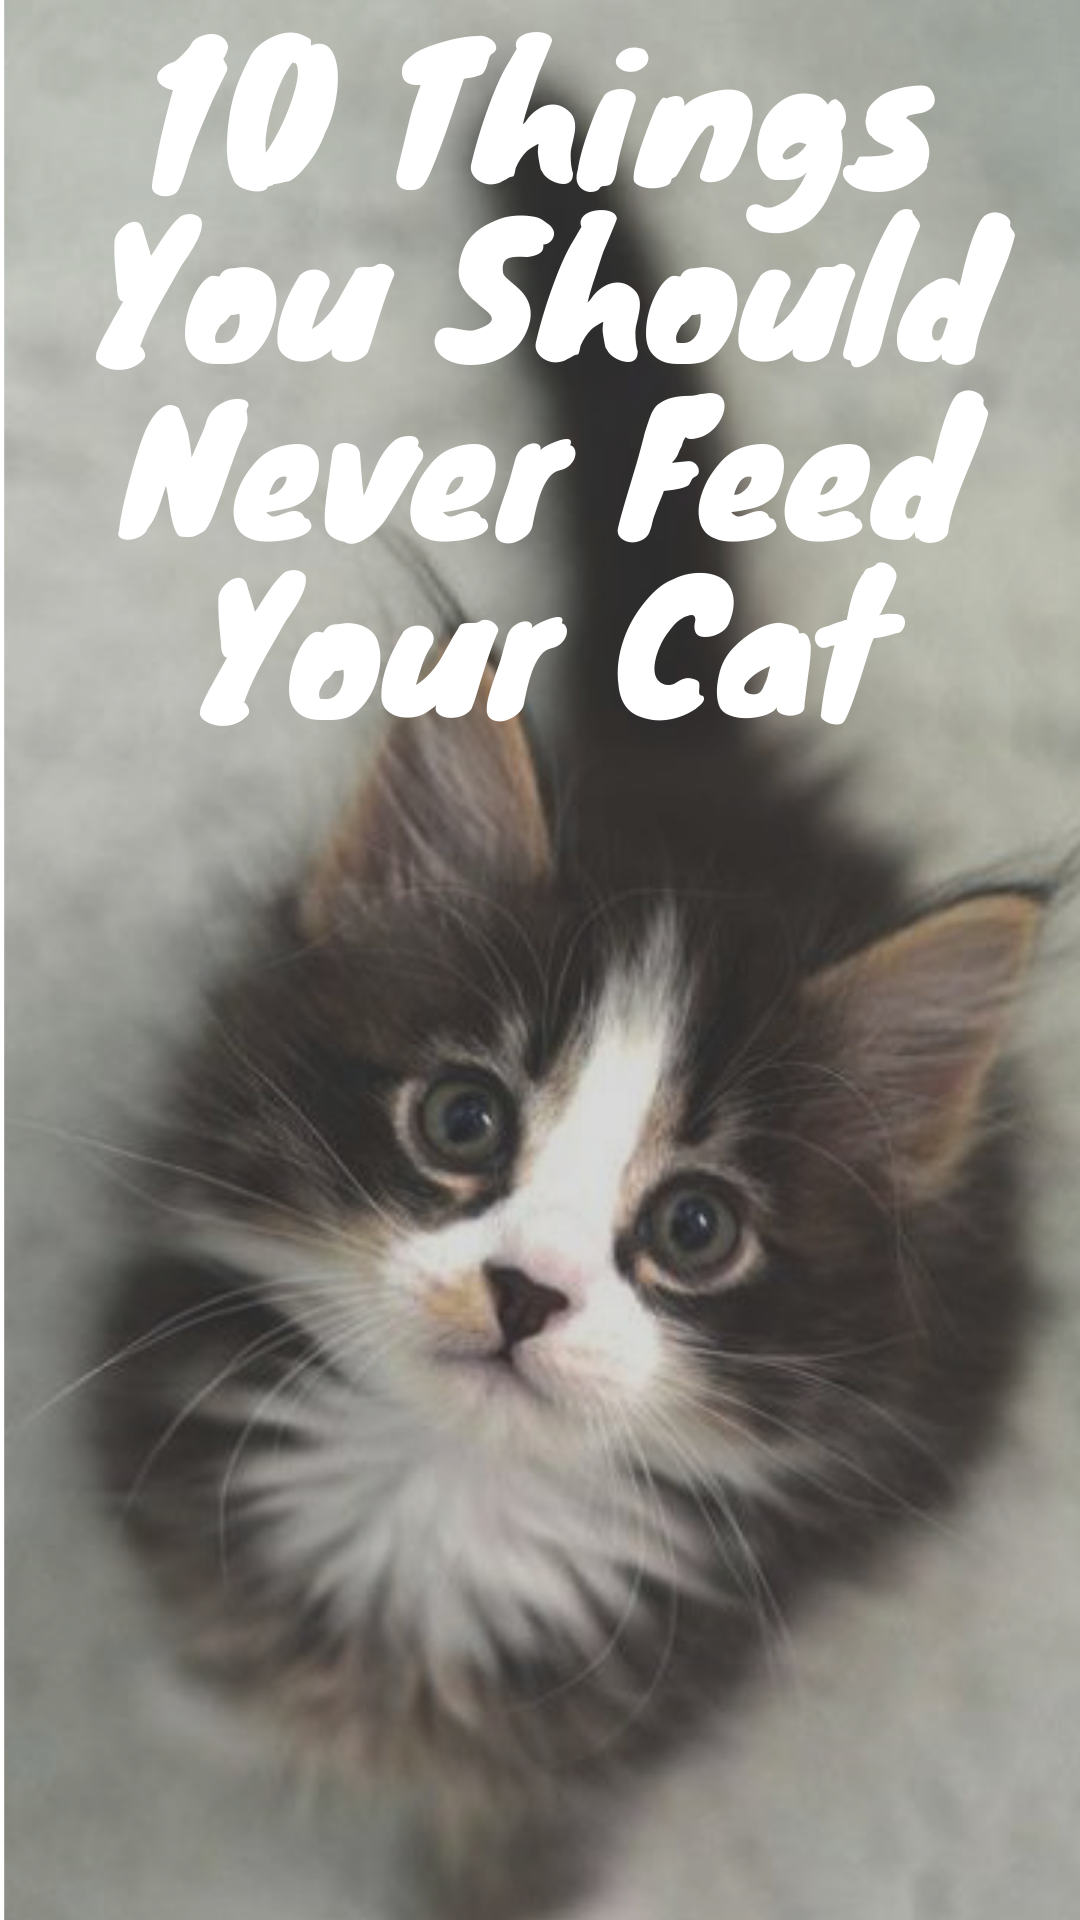 10 Things You Should Never Feed Your Cat With Images Funny Cats Cat Area Cat Safety